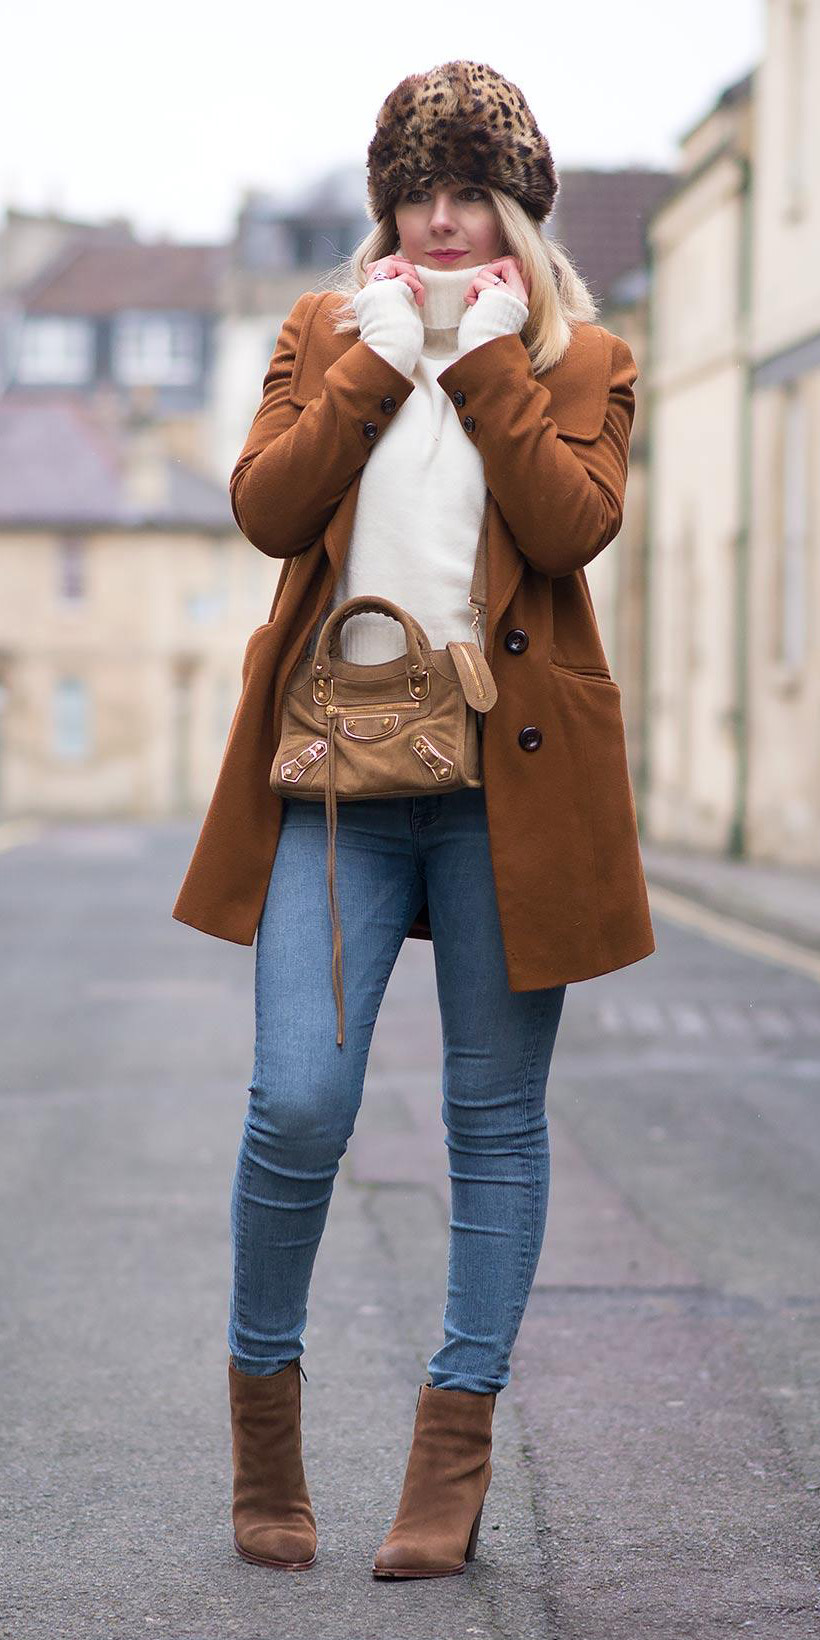 how-to-style-blue-light-skinny-jeans-white-sweater-turtleneck-leopard-print-hat-blonde-lob-tan-bag-cognac-shoe-booties-camel-jacket-coat-fall-winter-fashion-lunch.jpg